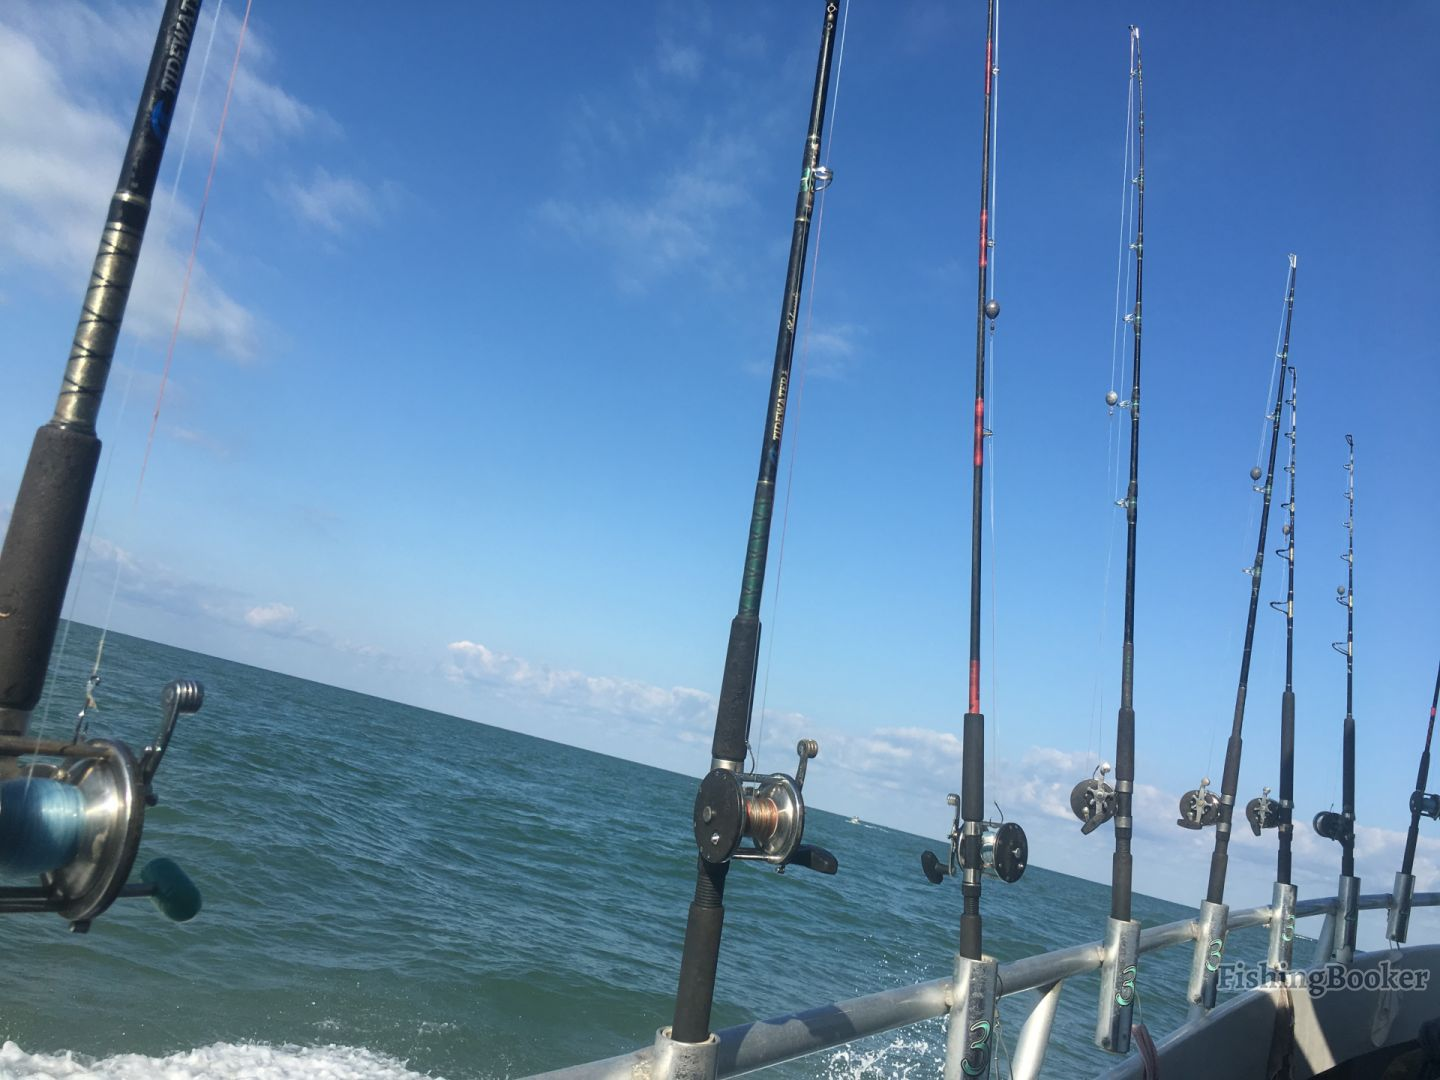 rods on a party boat